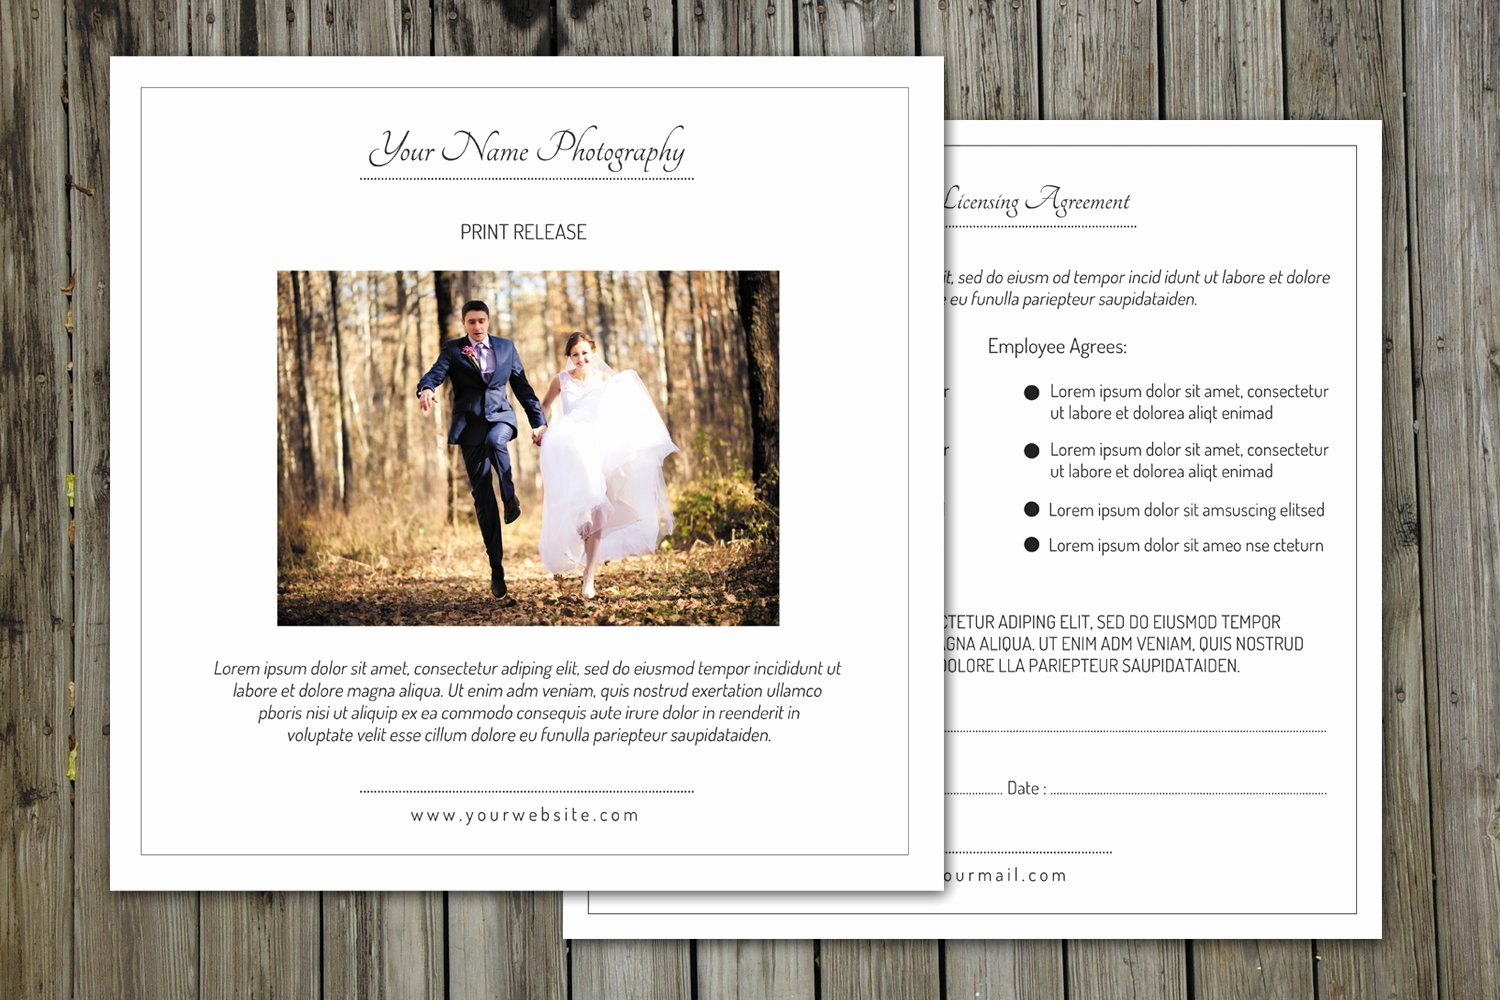 Print Release form Template New Grapher Print Release form V144 Flyer Templates